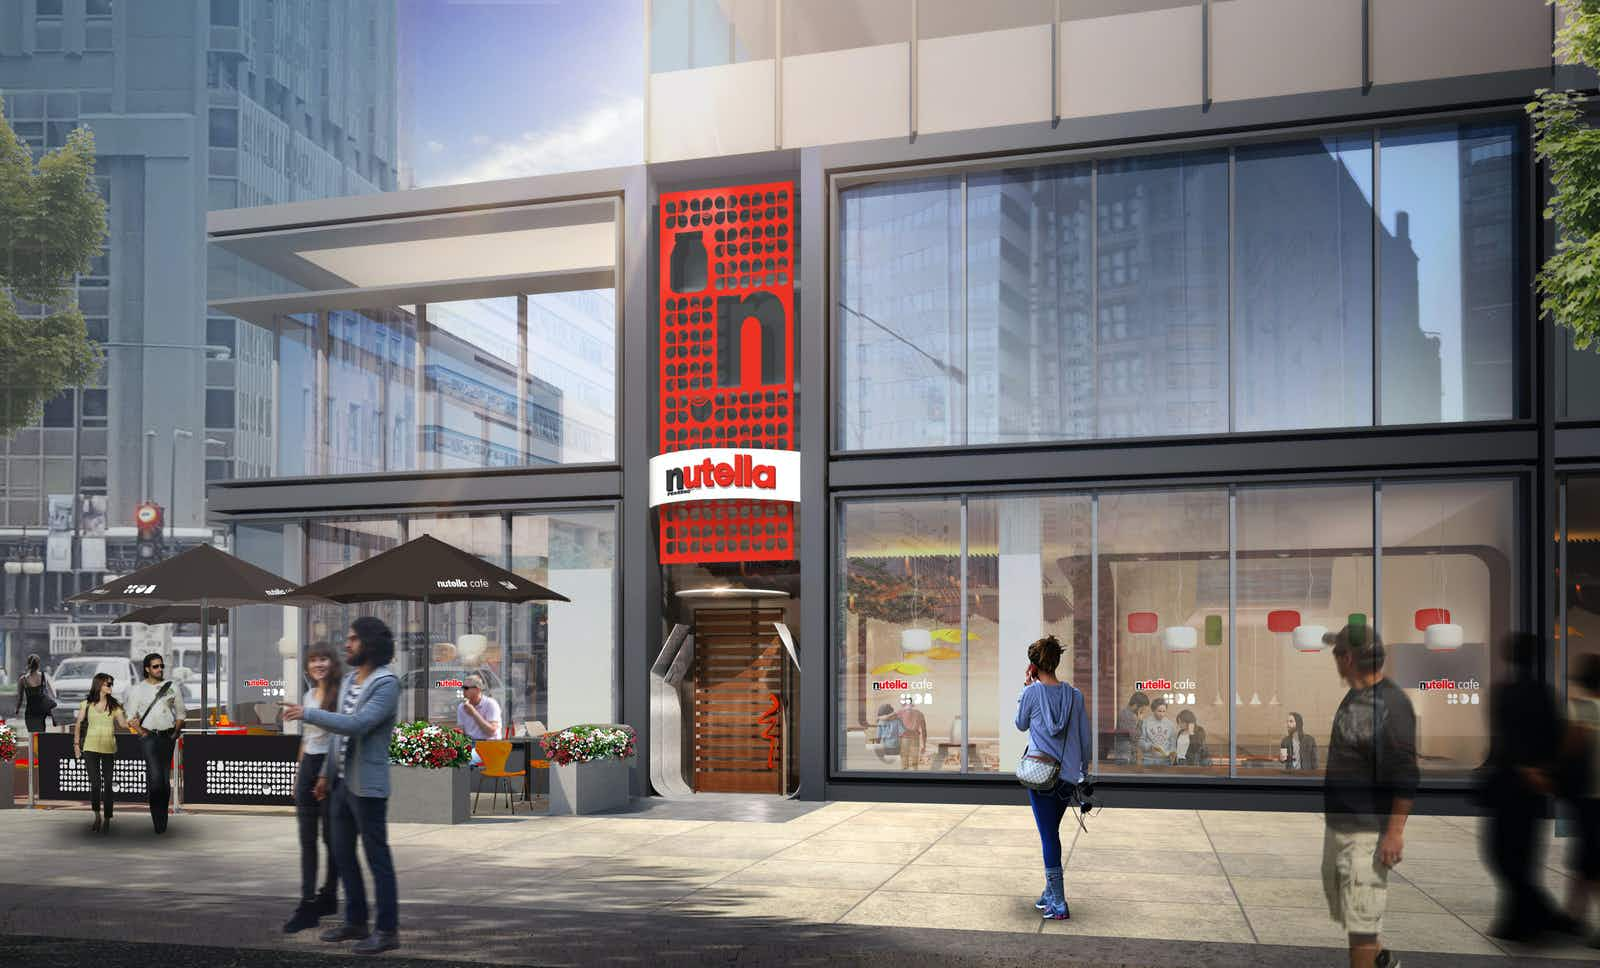 Get excited because the first official Nutella Café is going to open this month in Chicago